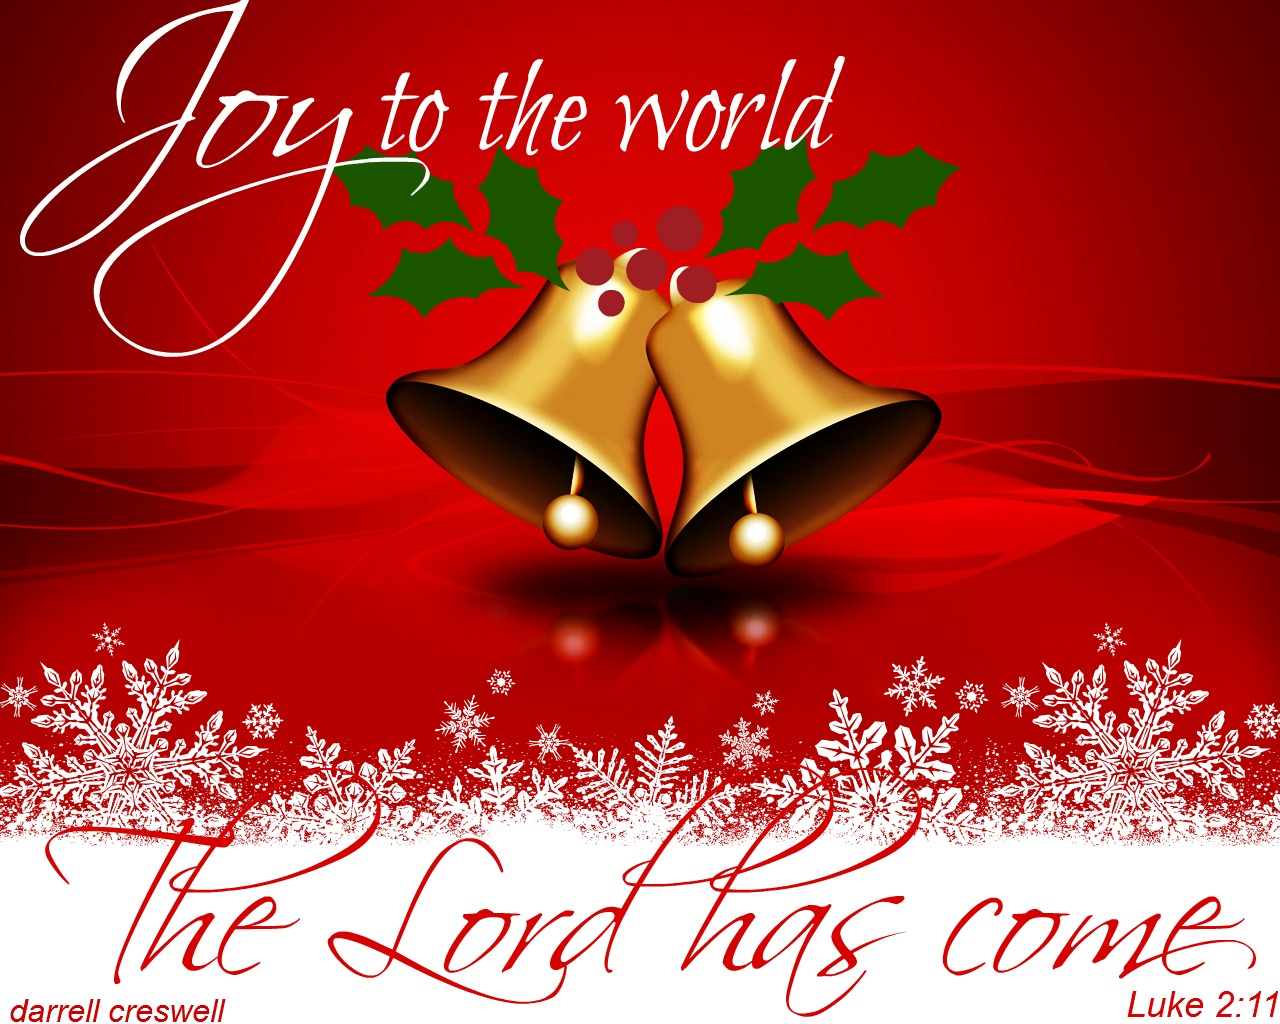 Christmas Quotes And Graphics: Christian Christmas Cards, Songs, Photos And Pictures